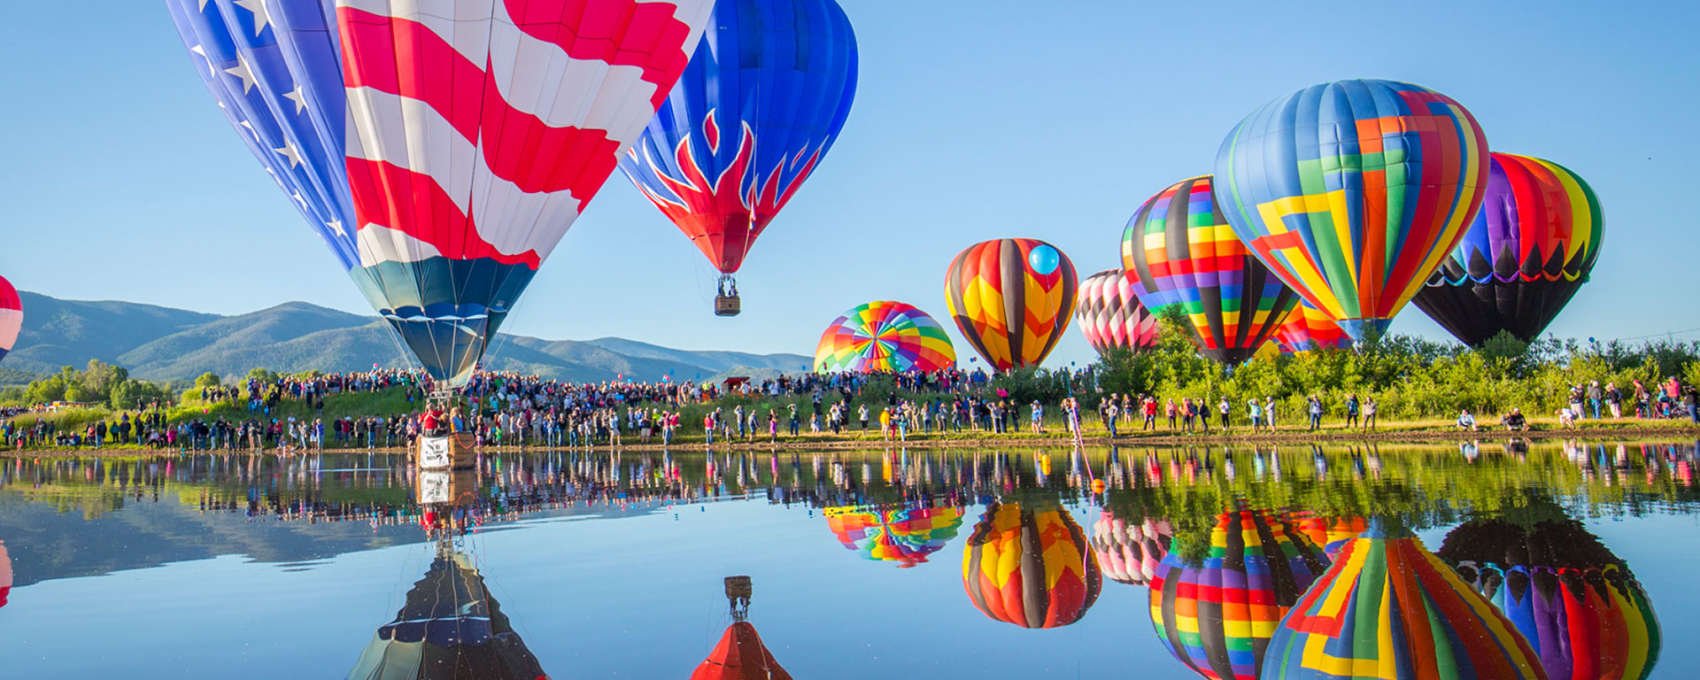 events_steamboat_springs hot air balloon